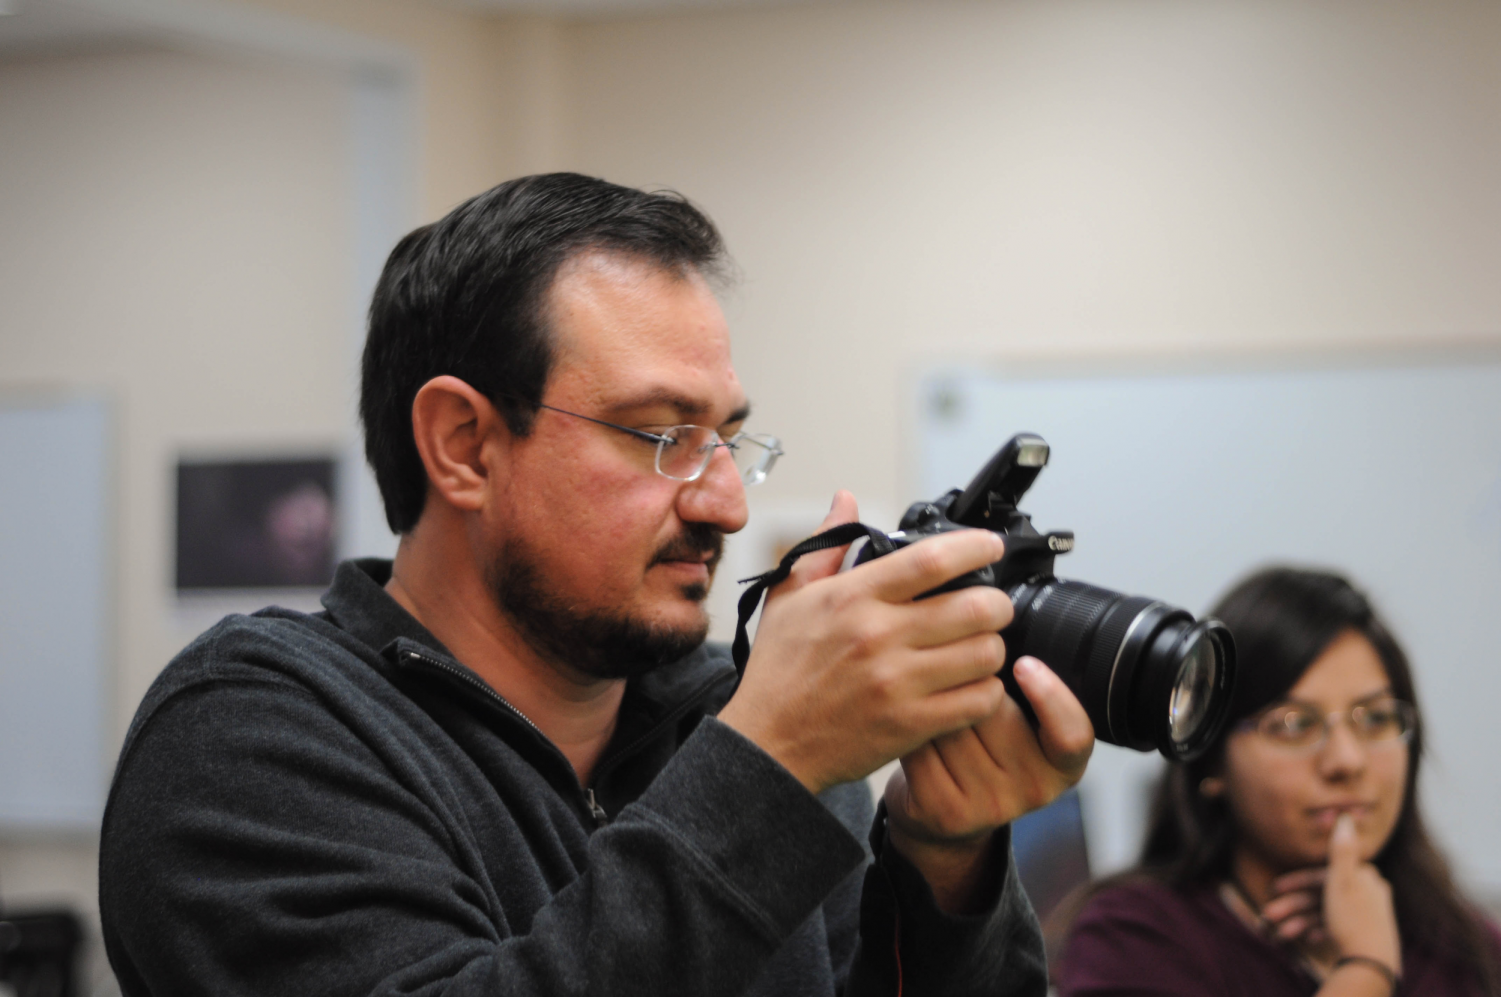 Teacher Jesus-Octavio Oropeza demonstrates taking profile shots to his digital media students.